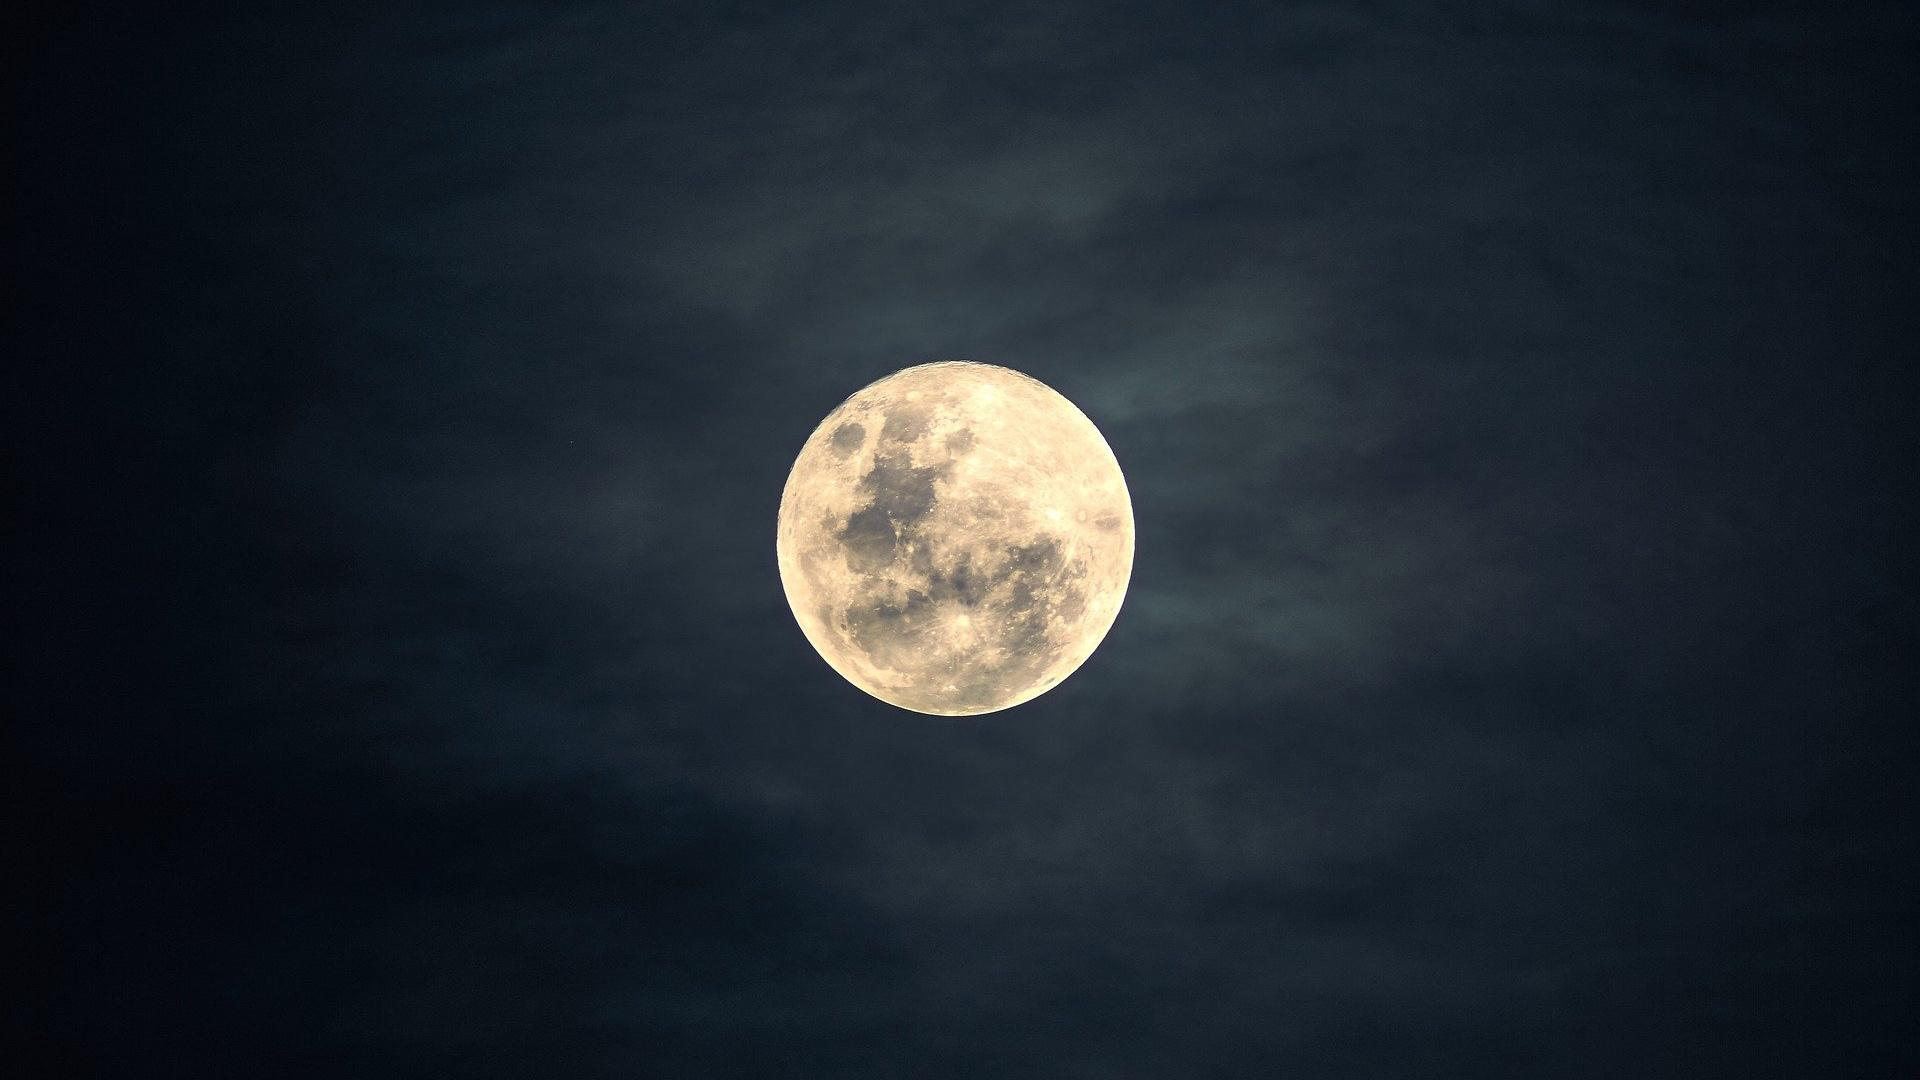 We're going to see a rare Halloween blue moon tomorrow